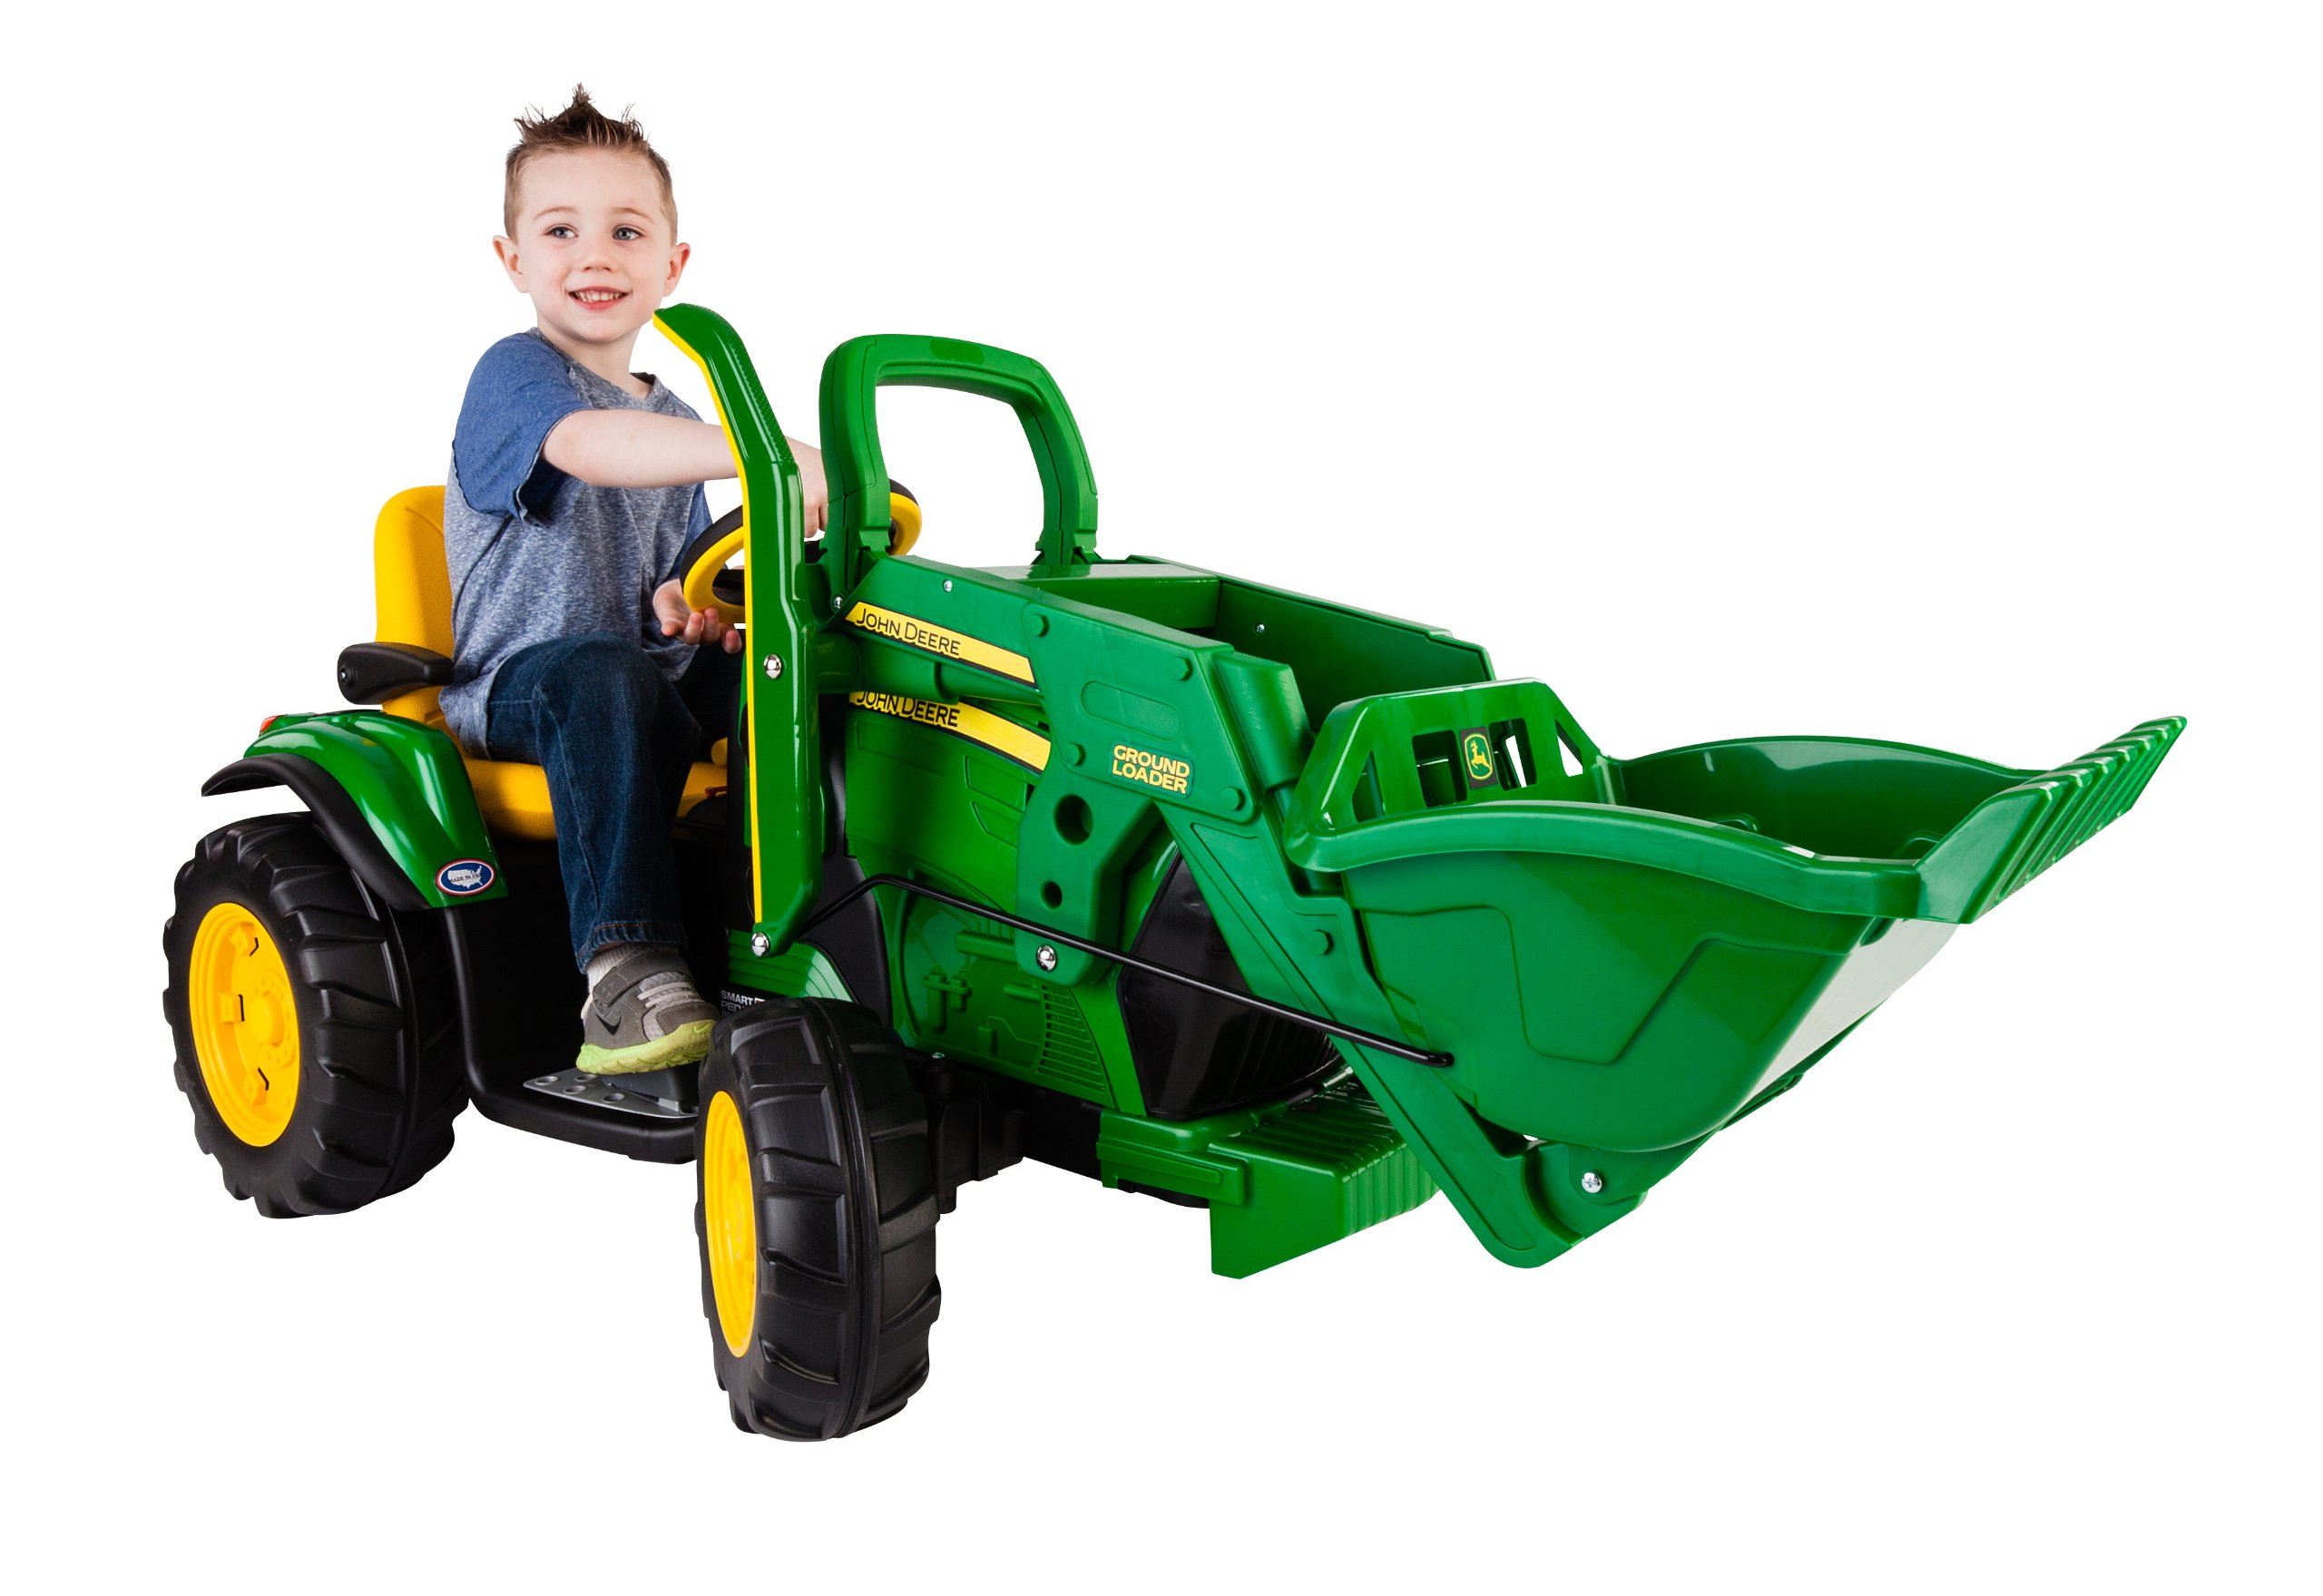 Peg Perego John Deere Ground Loader Ride On, Green by Peg Perego